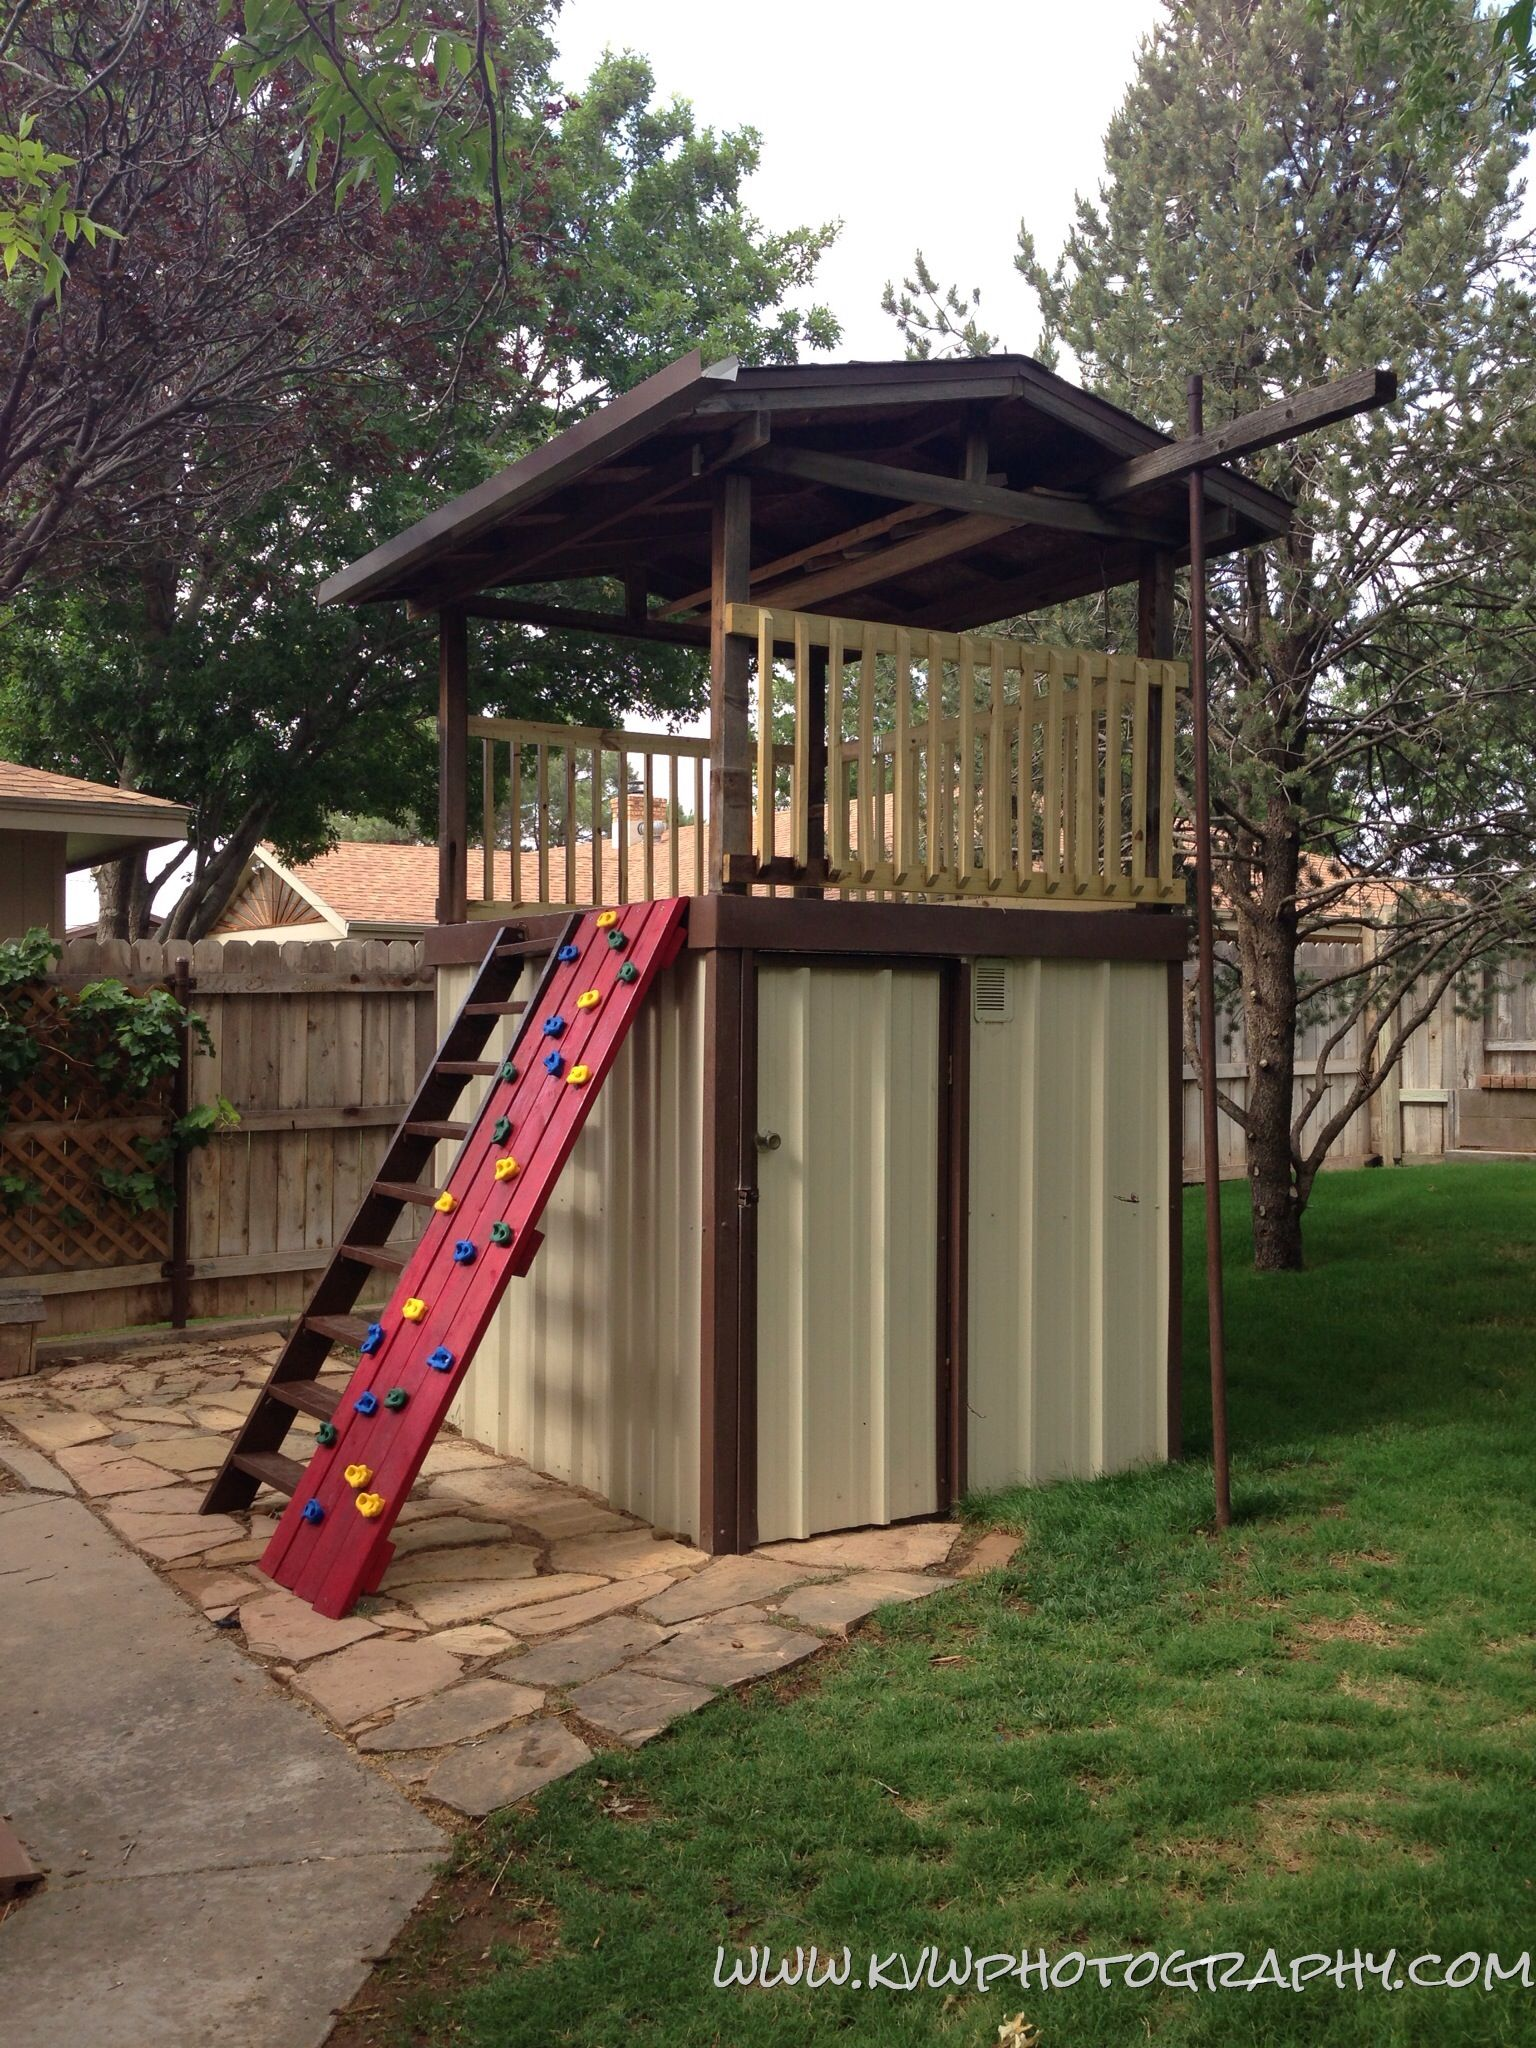 old fort turned into storage shed then back into a storage shed